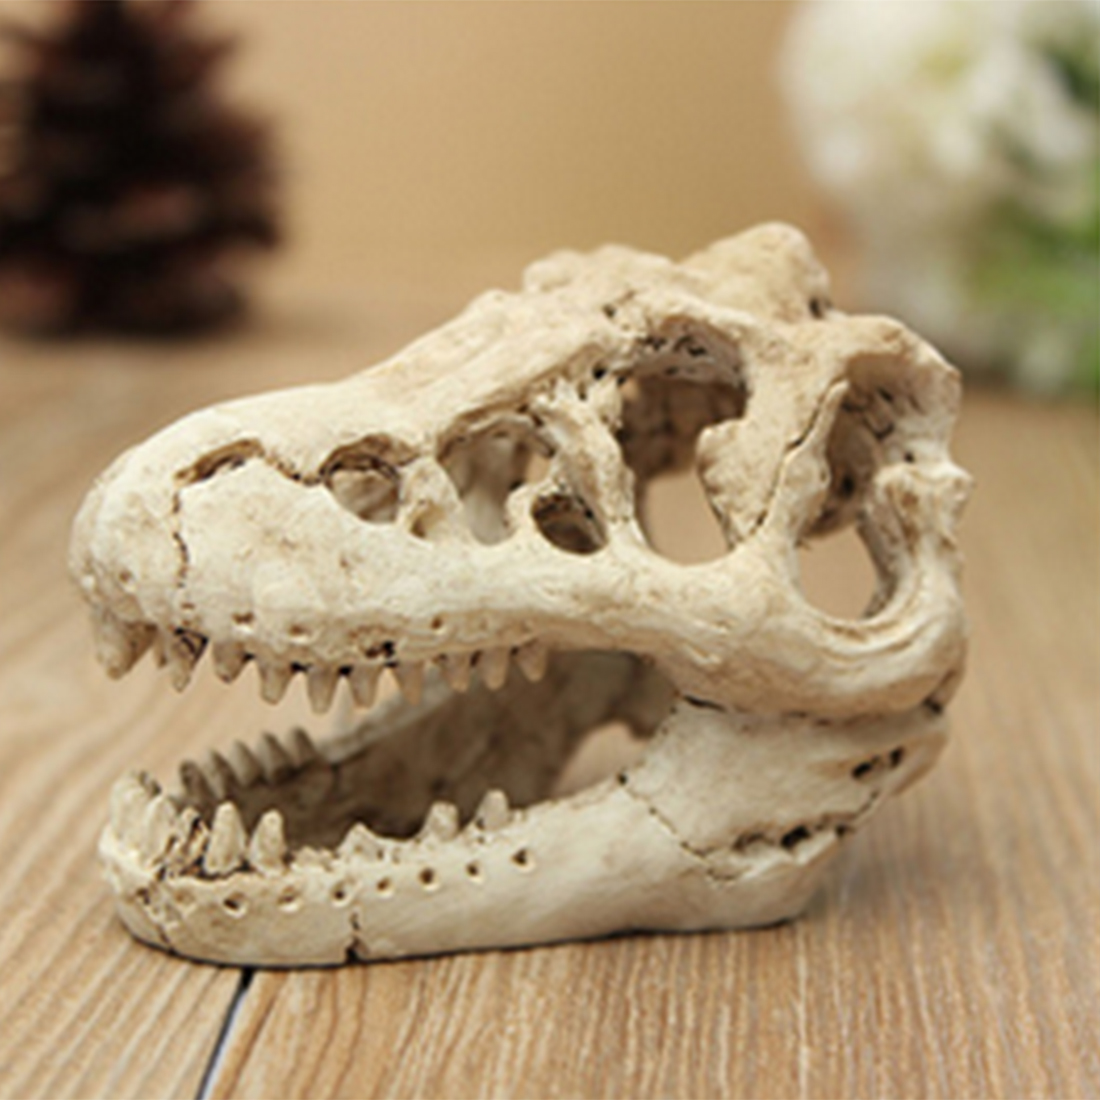 US $3.25 21% OFF|Dinosaur Skull Shape Aquarium Crawler Box Landscaping Decor   S-in Habitat Decor from Home & Garden on AliExpress - 11.11_Double 11_Singles